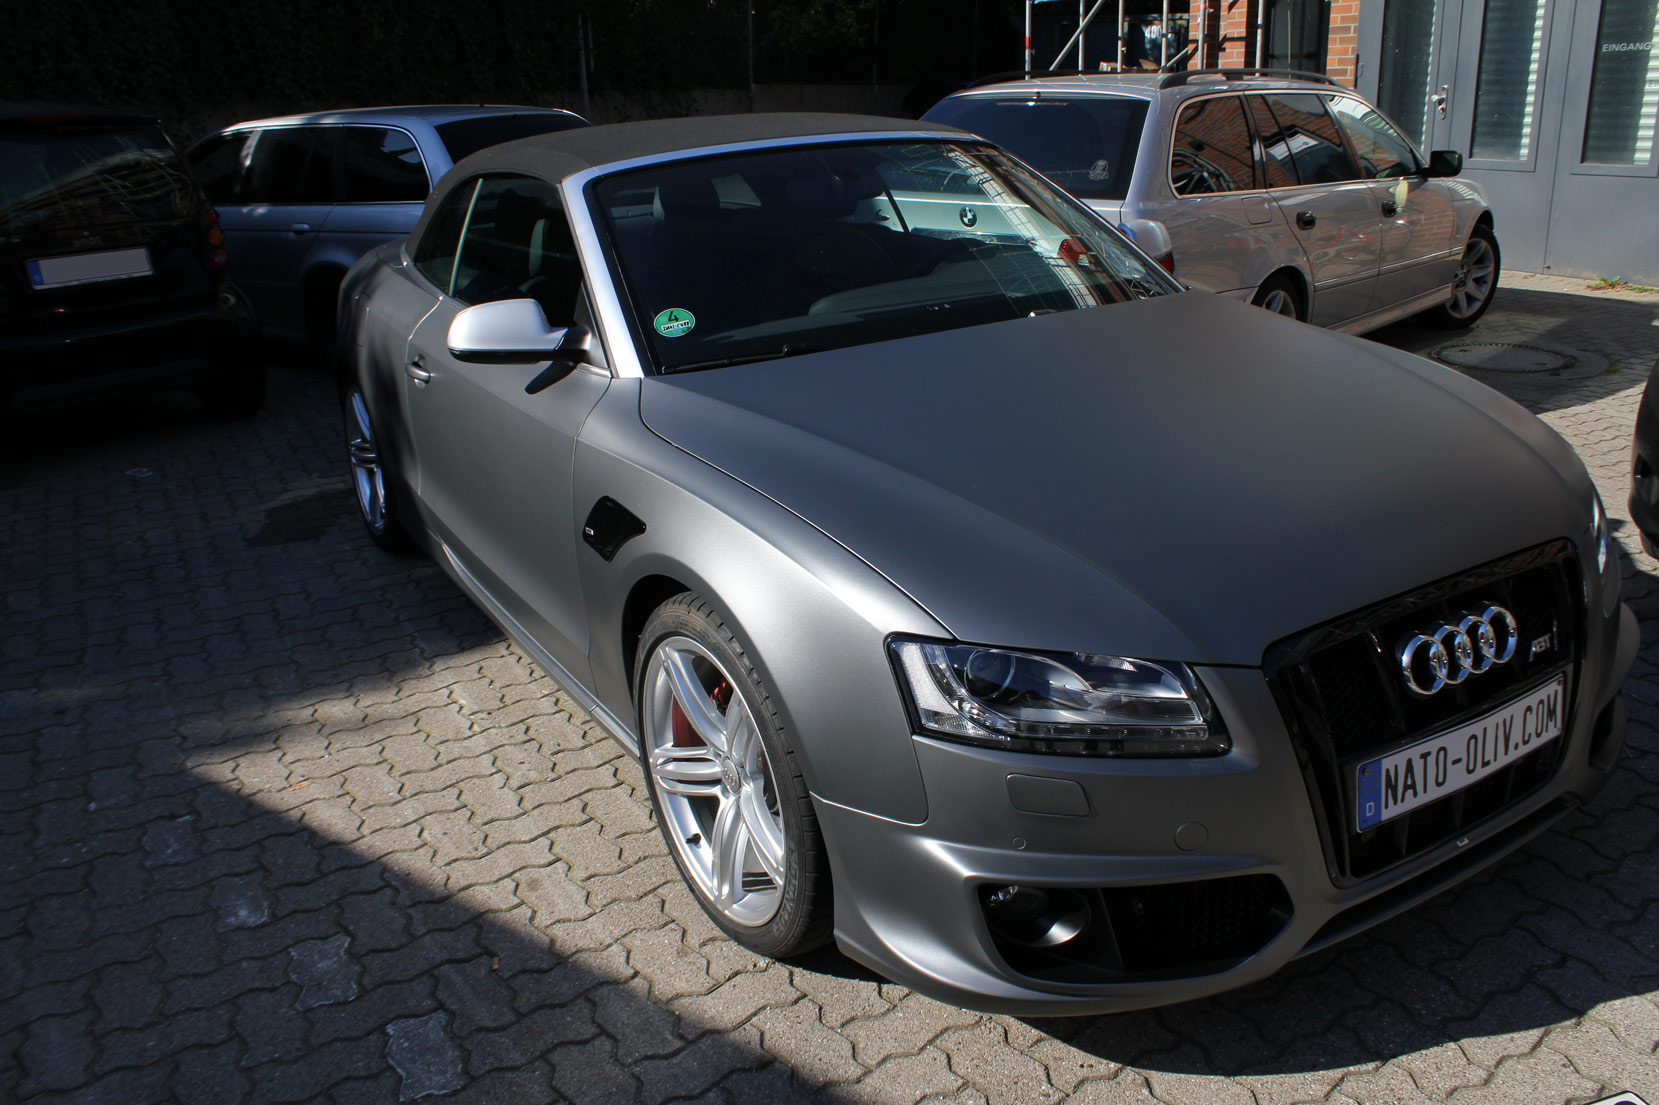 Autolack Anthrazit Metallic Matt Audi A5 Cabrio In Anthrazit Matt Metallic | Nato-oliv.com